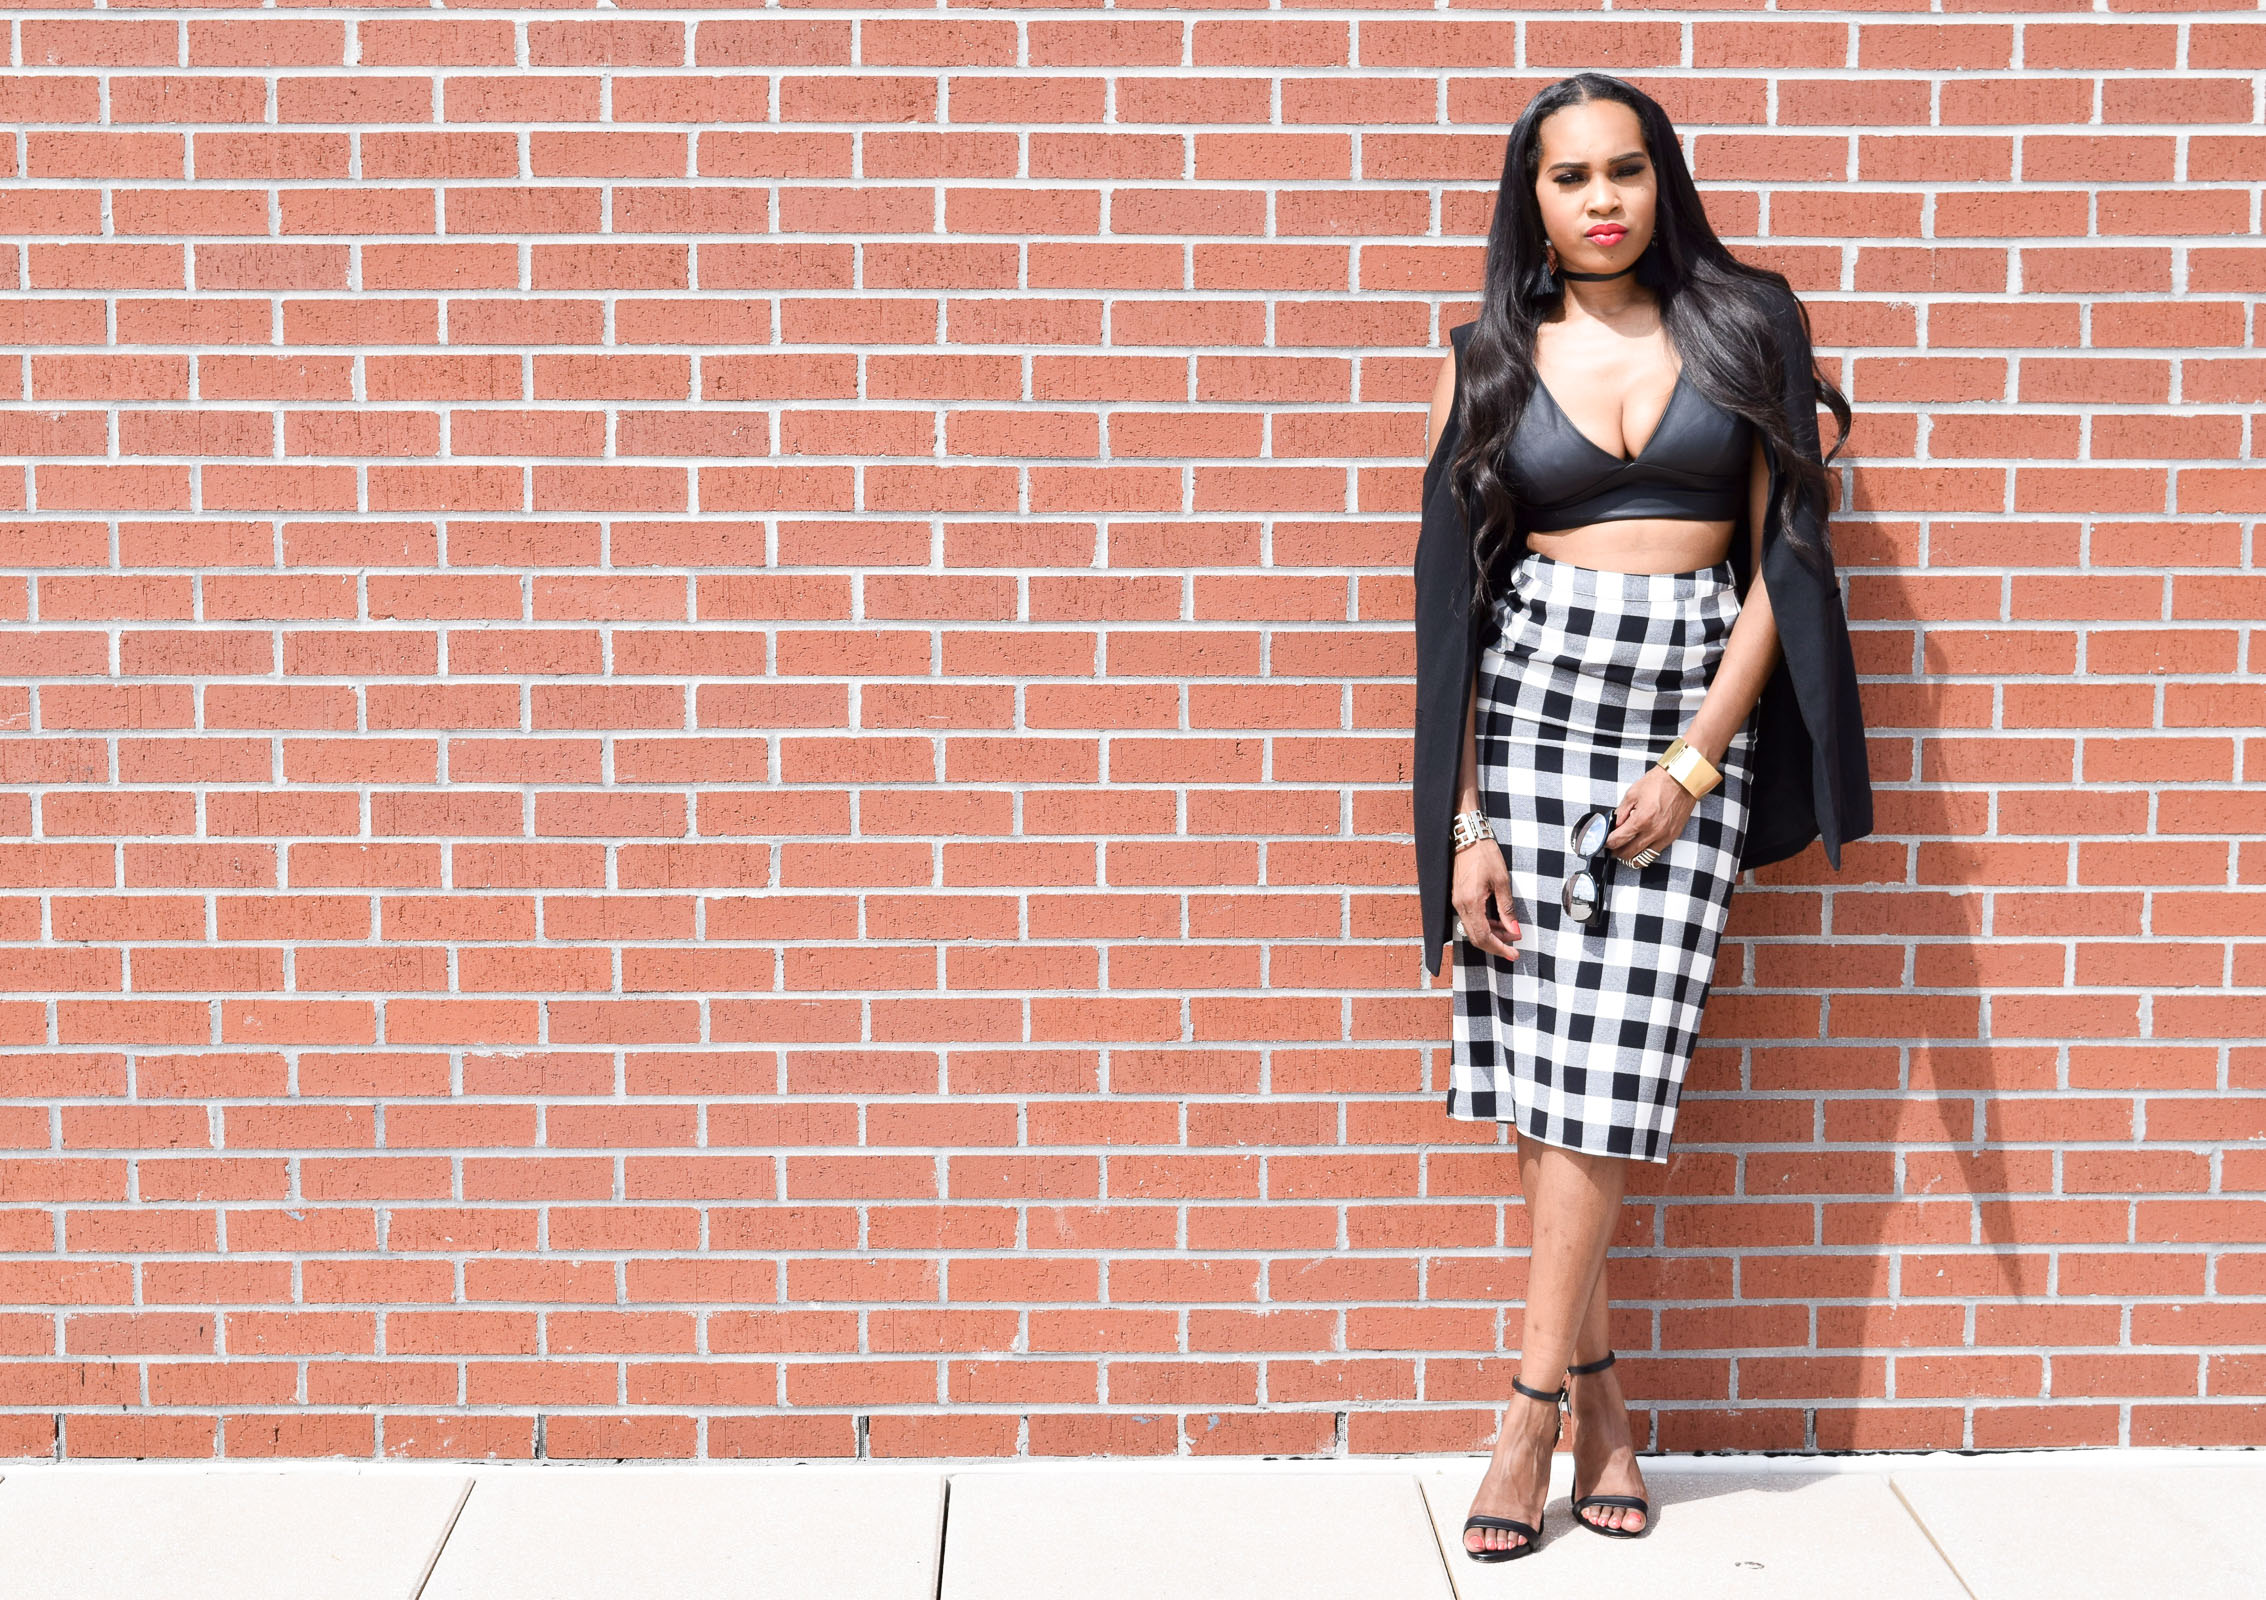 Style-Files-WhoWhatWear-Target-collection-black-white-gingham-pencil-skirt-forever-21-black-leather-bralette-top-justfab-catherina-black-ankle-strap-sandals-Target-Mossimo-vest-who-to-wear-gingham-OohLaLaBlog-